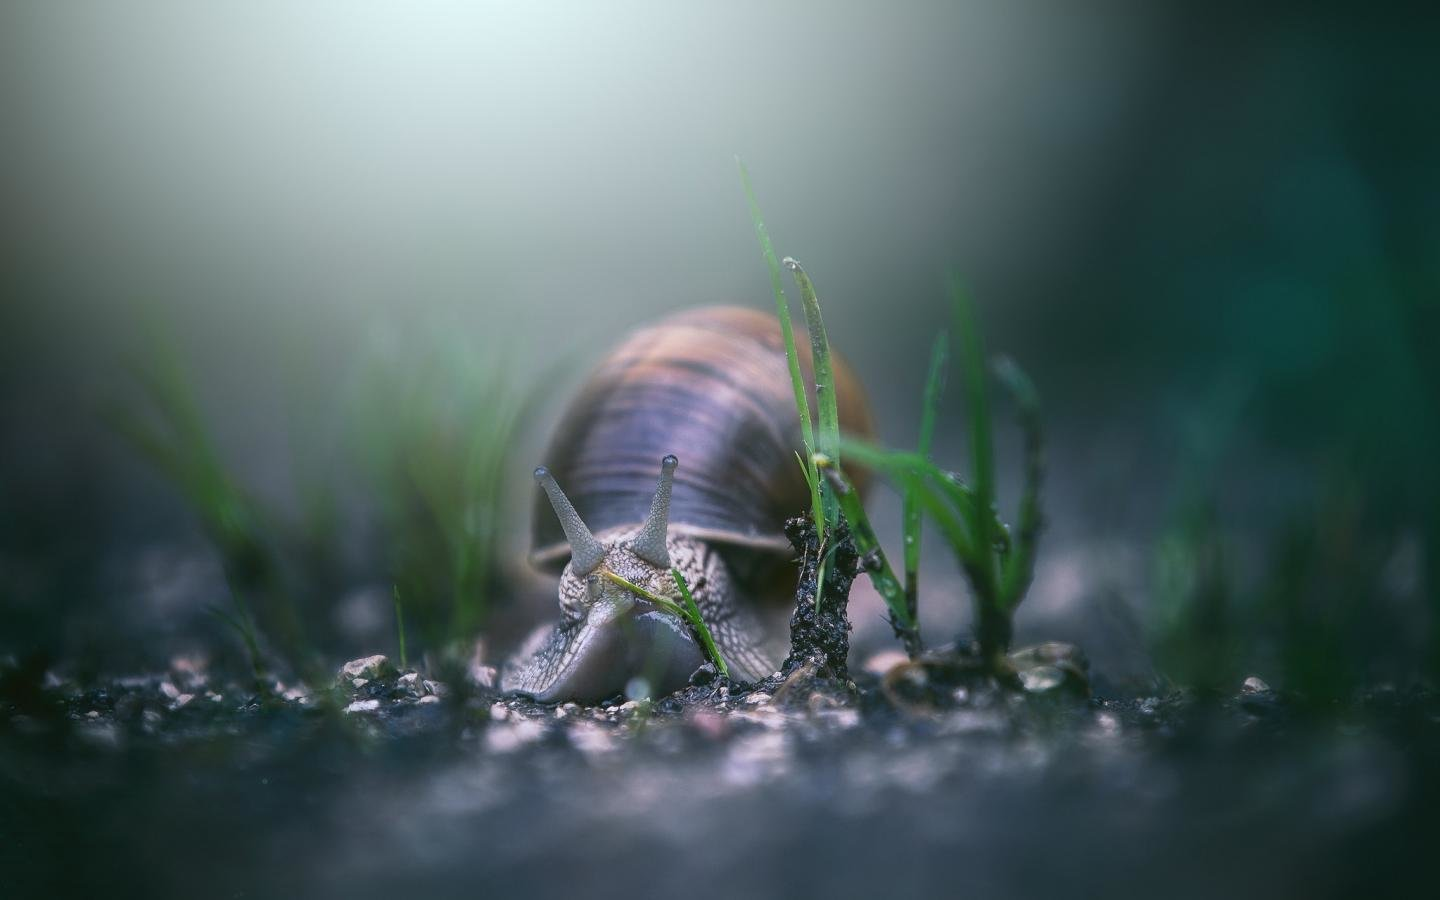 Free Snail high quality wallpaper ID:198866 for hd 1440x900 desktop